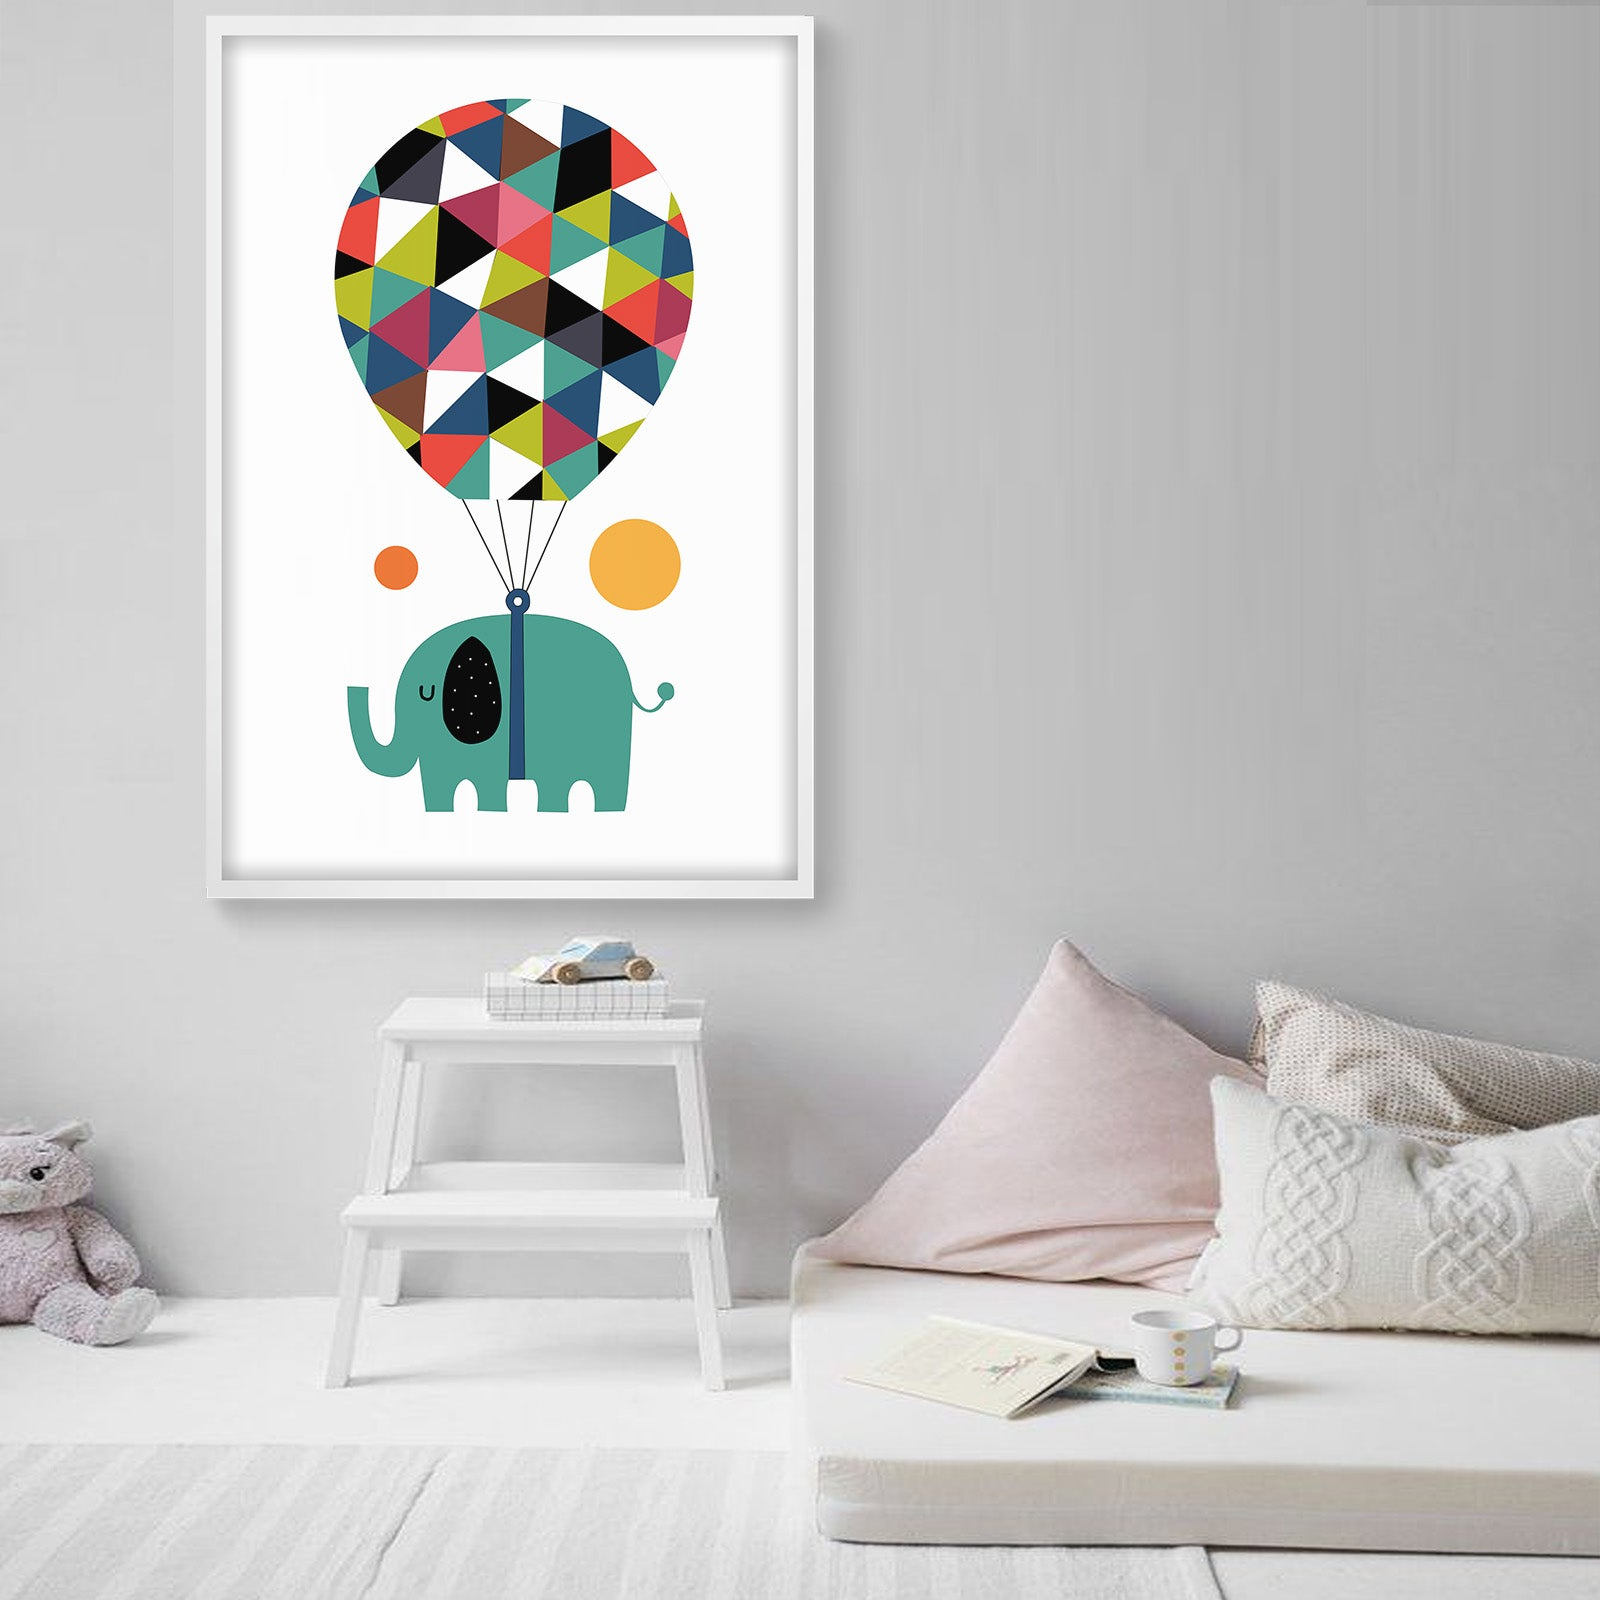 Framed Graphic Art Print  SOAPR0011 -  لوحه فنيه مطبوعه بالايطار - Shop Online Furniture and Home Decor Store in Dubai, UAE at ebarza